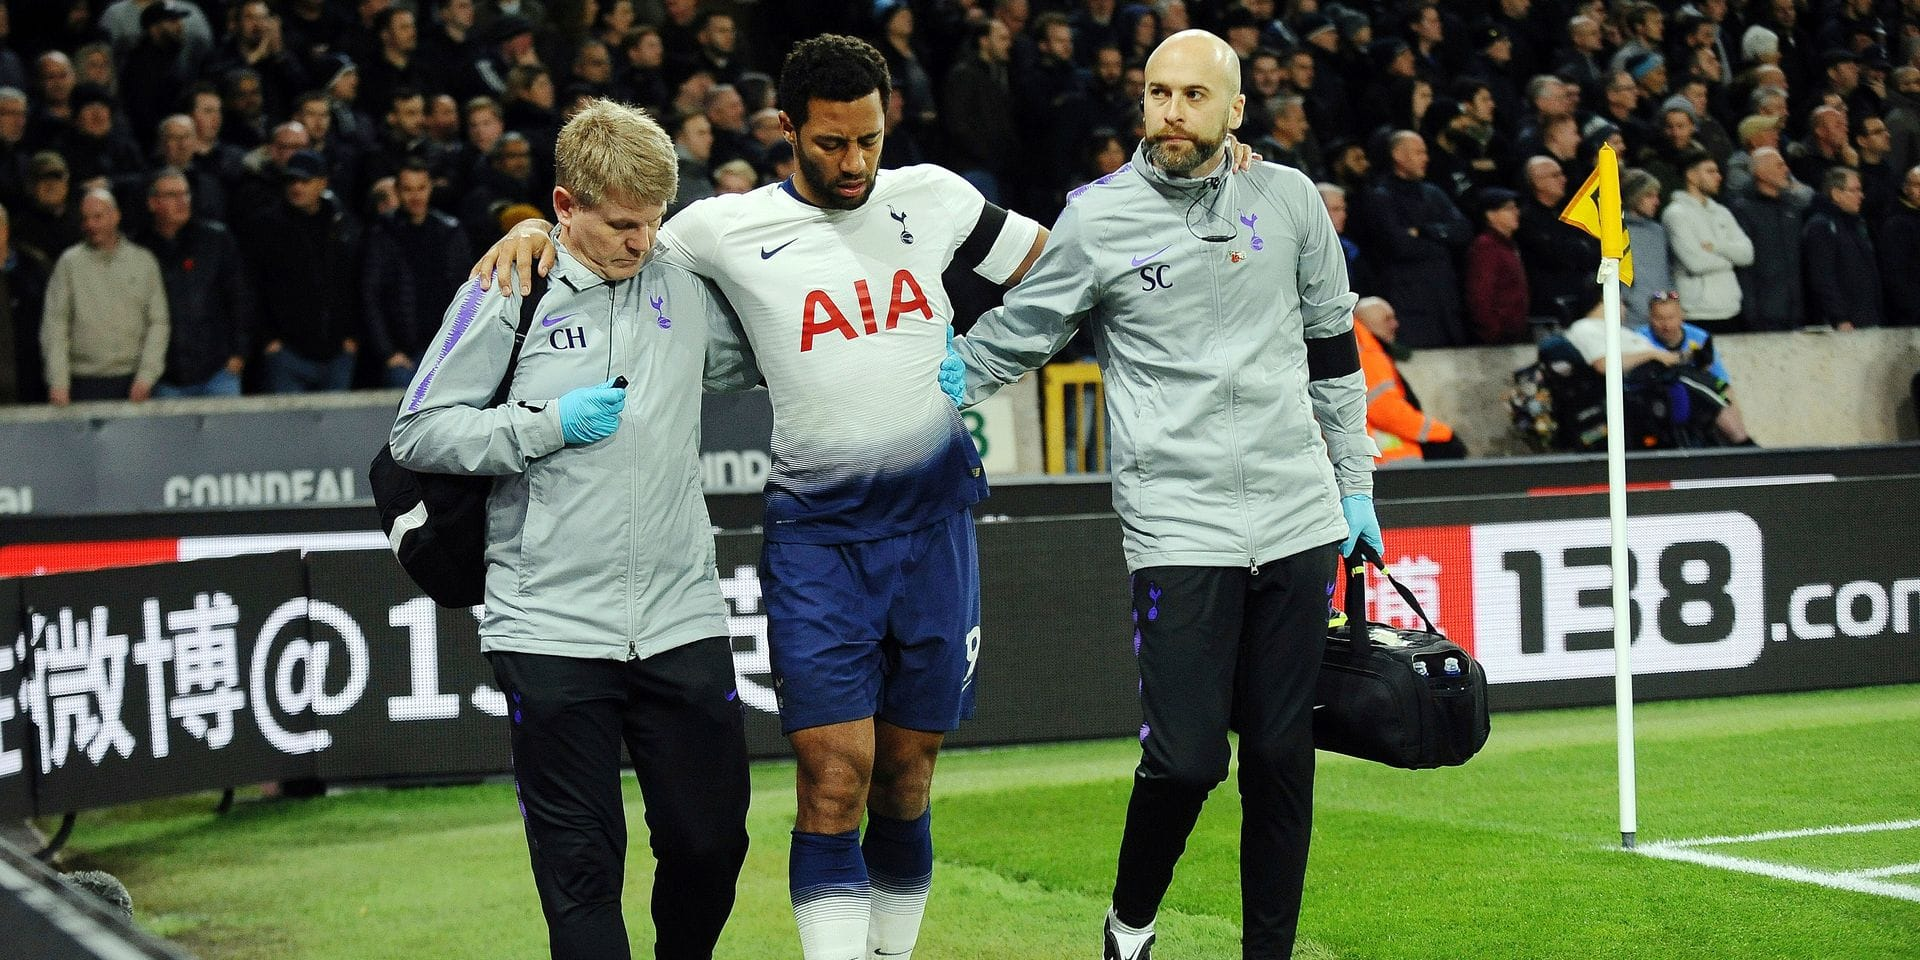 Medics help Tottenham's Mousa Dembele, center, to leave the field during the English Premier League soccer match between Wolverhampton Wanderers and Tottenham Hotspur at the Molineux Stadium in Wolverhampton, England, Saturday, Nov. 3, 2018. (AP Photo/Rui Vieira)